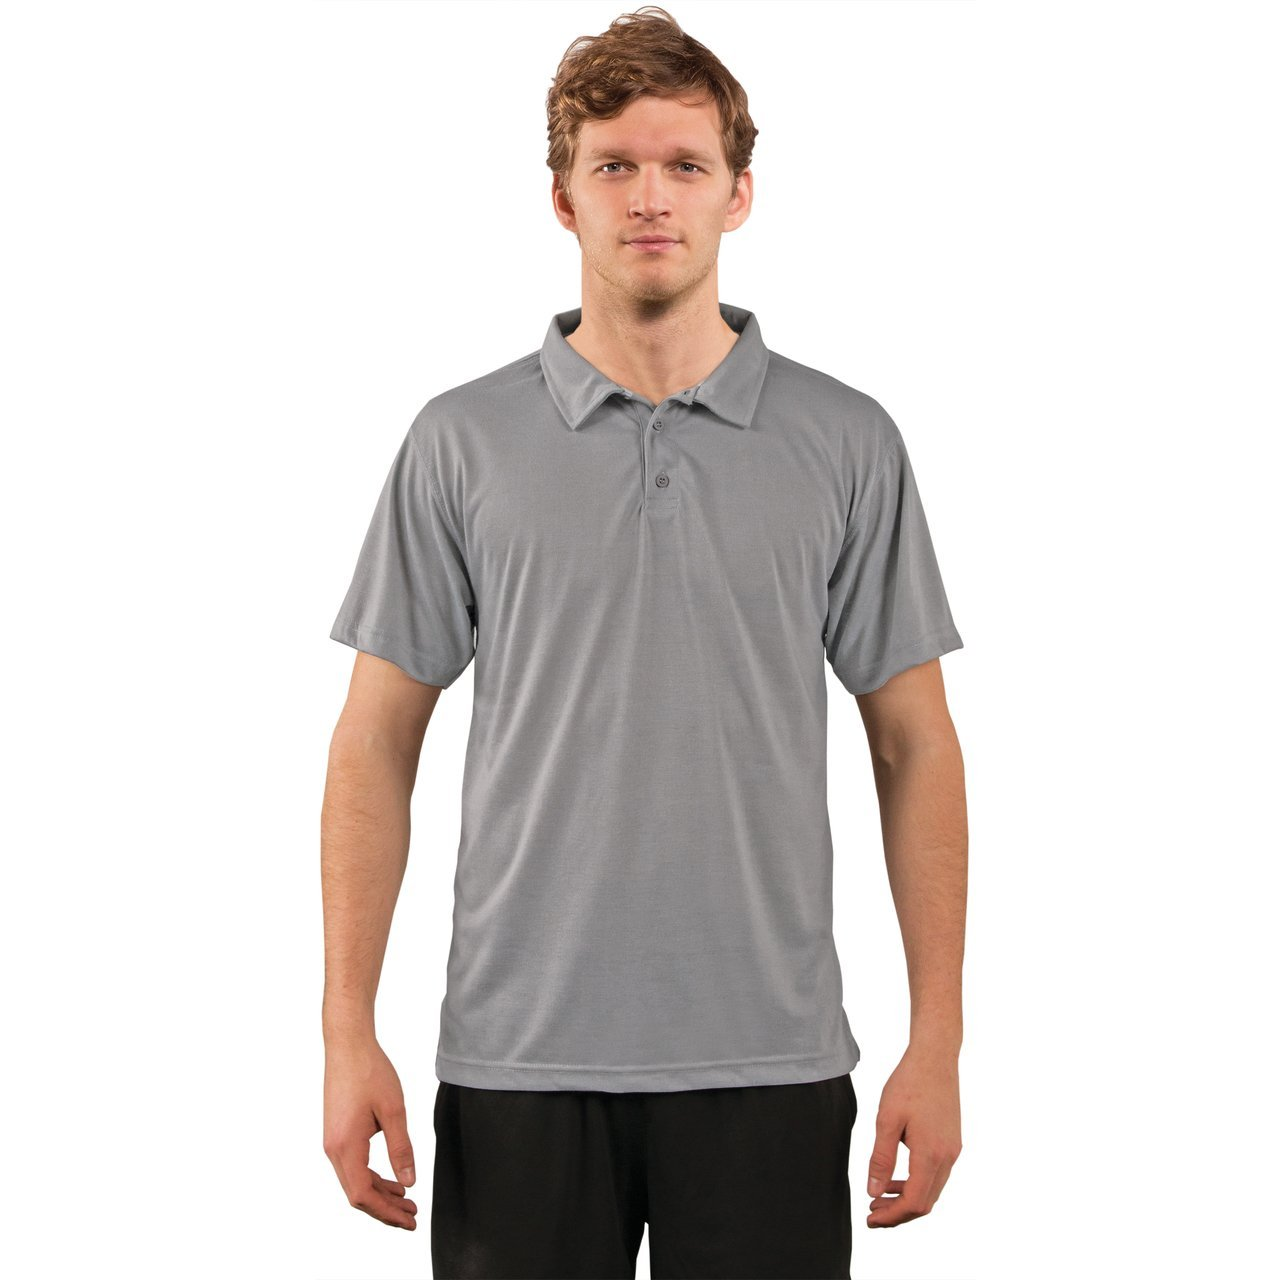 A1SJBPST Basic Performance Polo - Steel